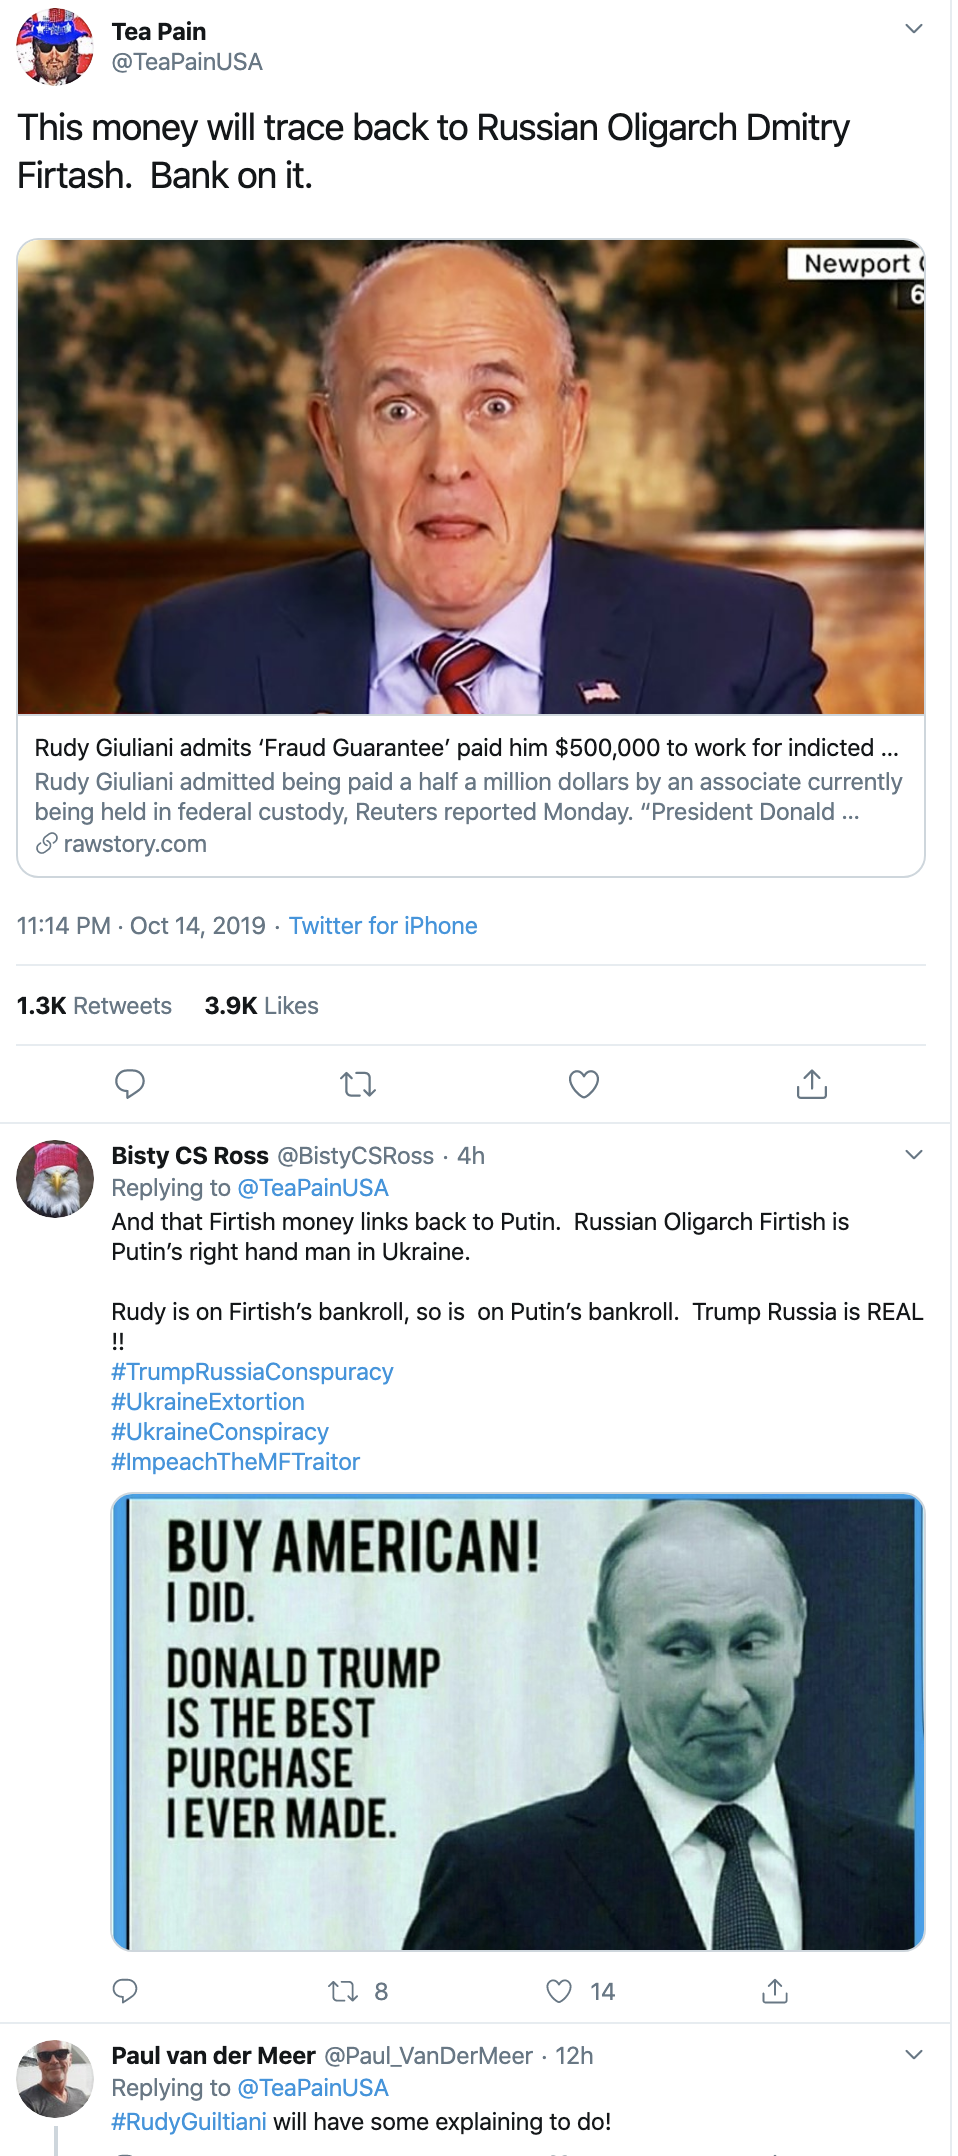 cad39fa3-screen-shot-2019-10-15-at-11.24.44-am Giuliani's Lucrative Deal With Indicted Russians Leaked Corruption Crime Domestic Policy Donald Trump Election 2016 Election 2020 Featured Foreign Policy Impeachment Investigation Military National Security Politics Top Stories War